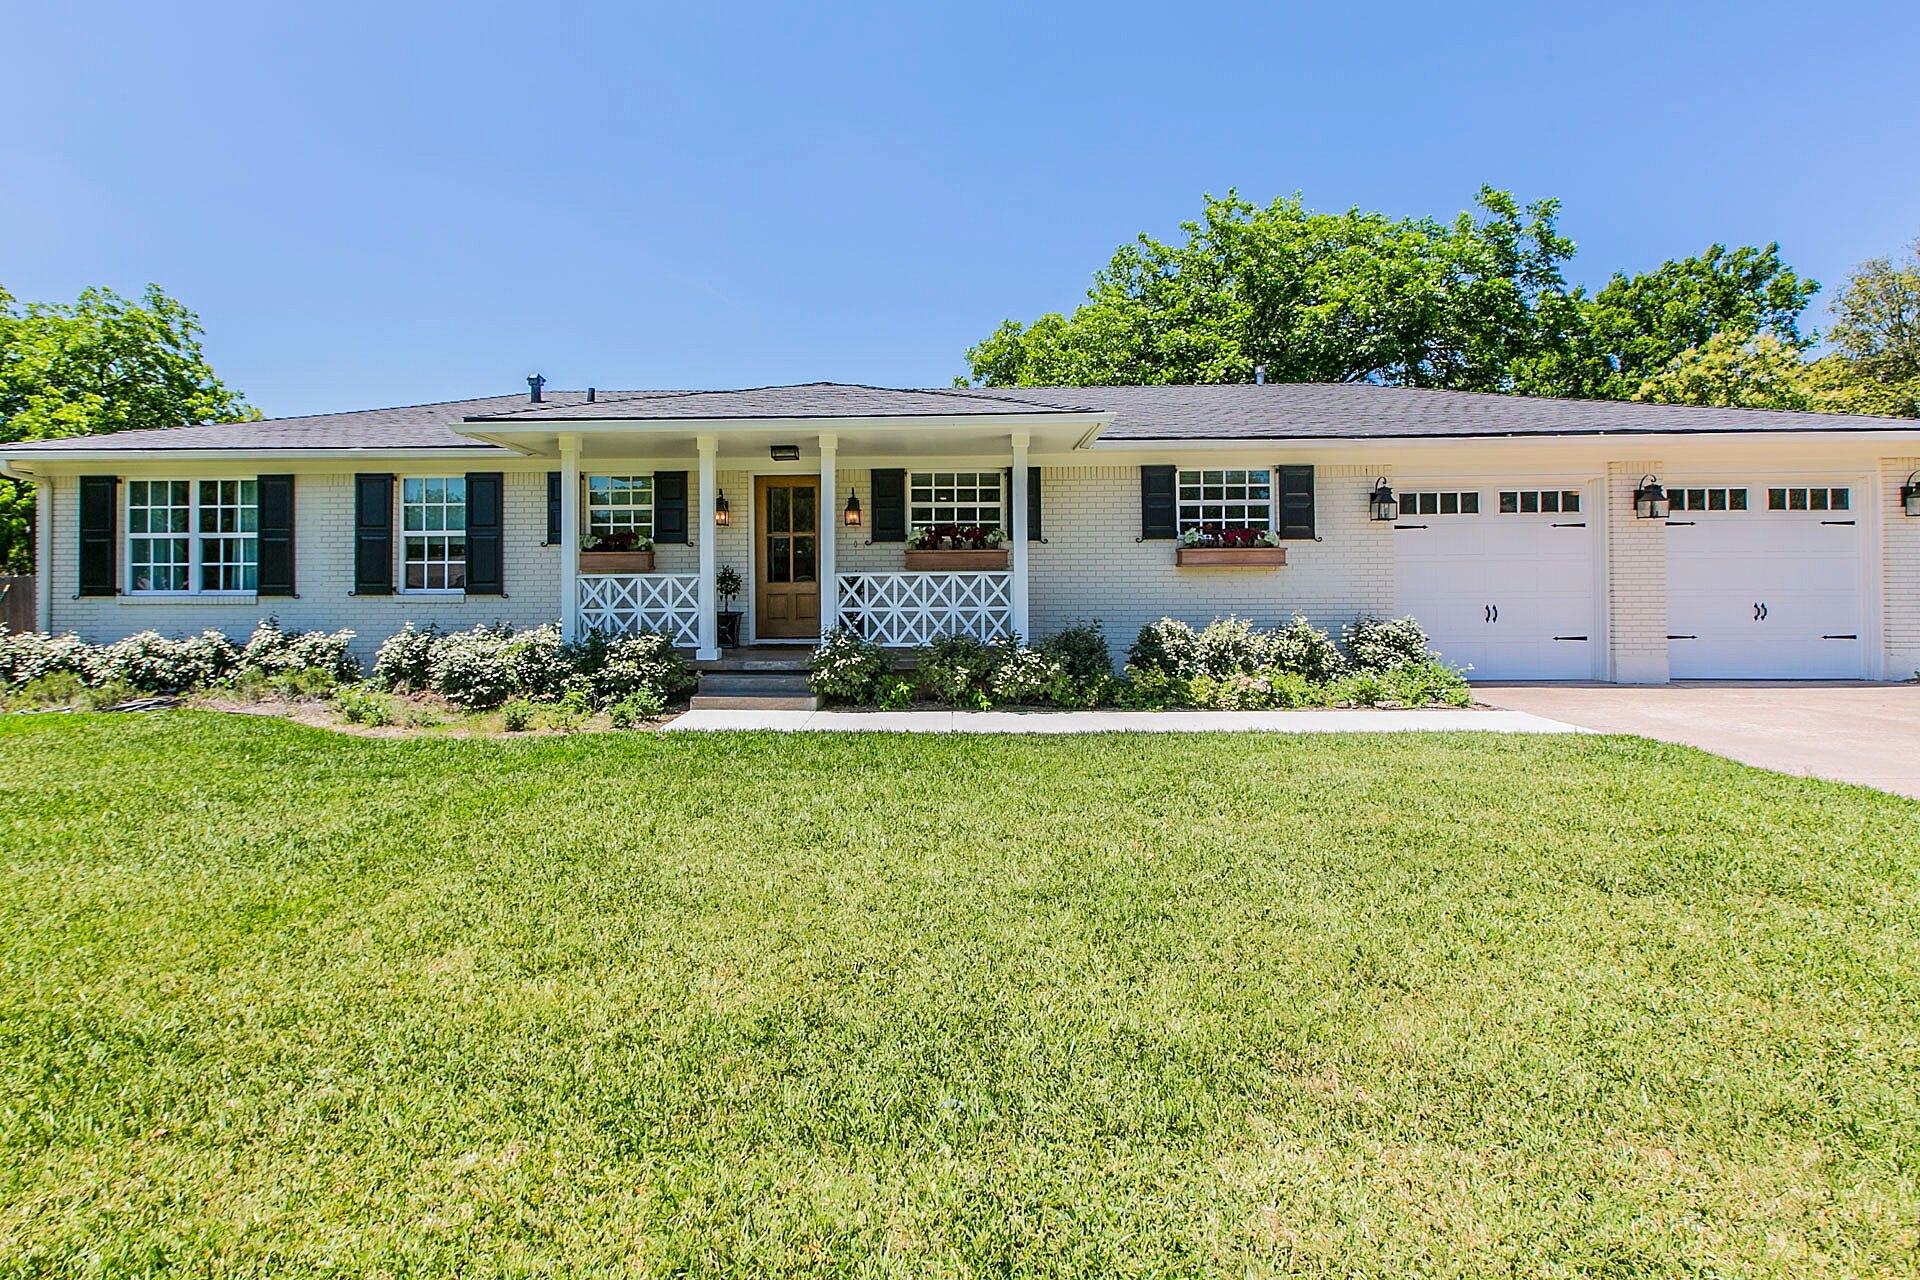 Cheapest Homes for Sale in USA, cheapest houses for sale in usa 2020, cheapest houses for sale in usa 2019, cheapest homes for rent in us, cheapest houses for sale in usa 2018, cheapest houses for rent in us, cheapest beach houses for sale in usa, cheapest houses for sale in america, cheapest beach homes for sale in america, cheapest houses for sale in usa 2021,